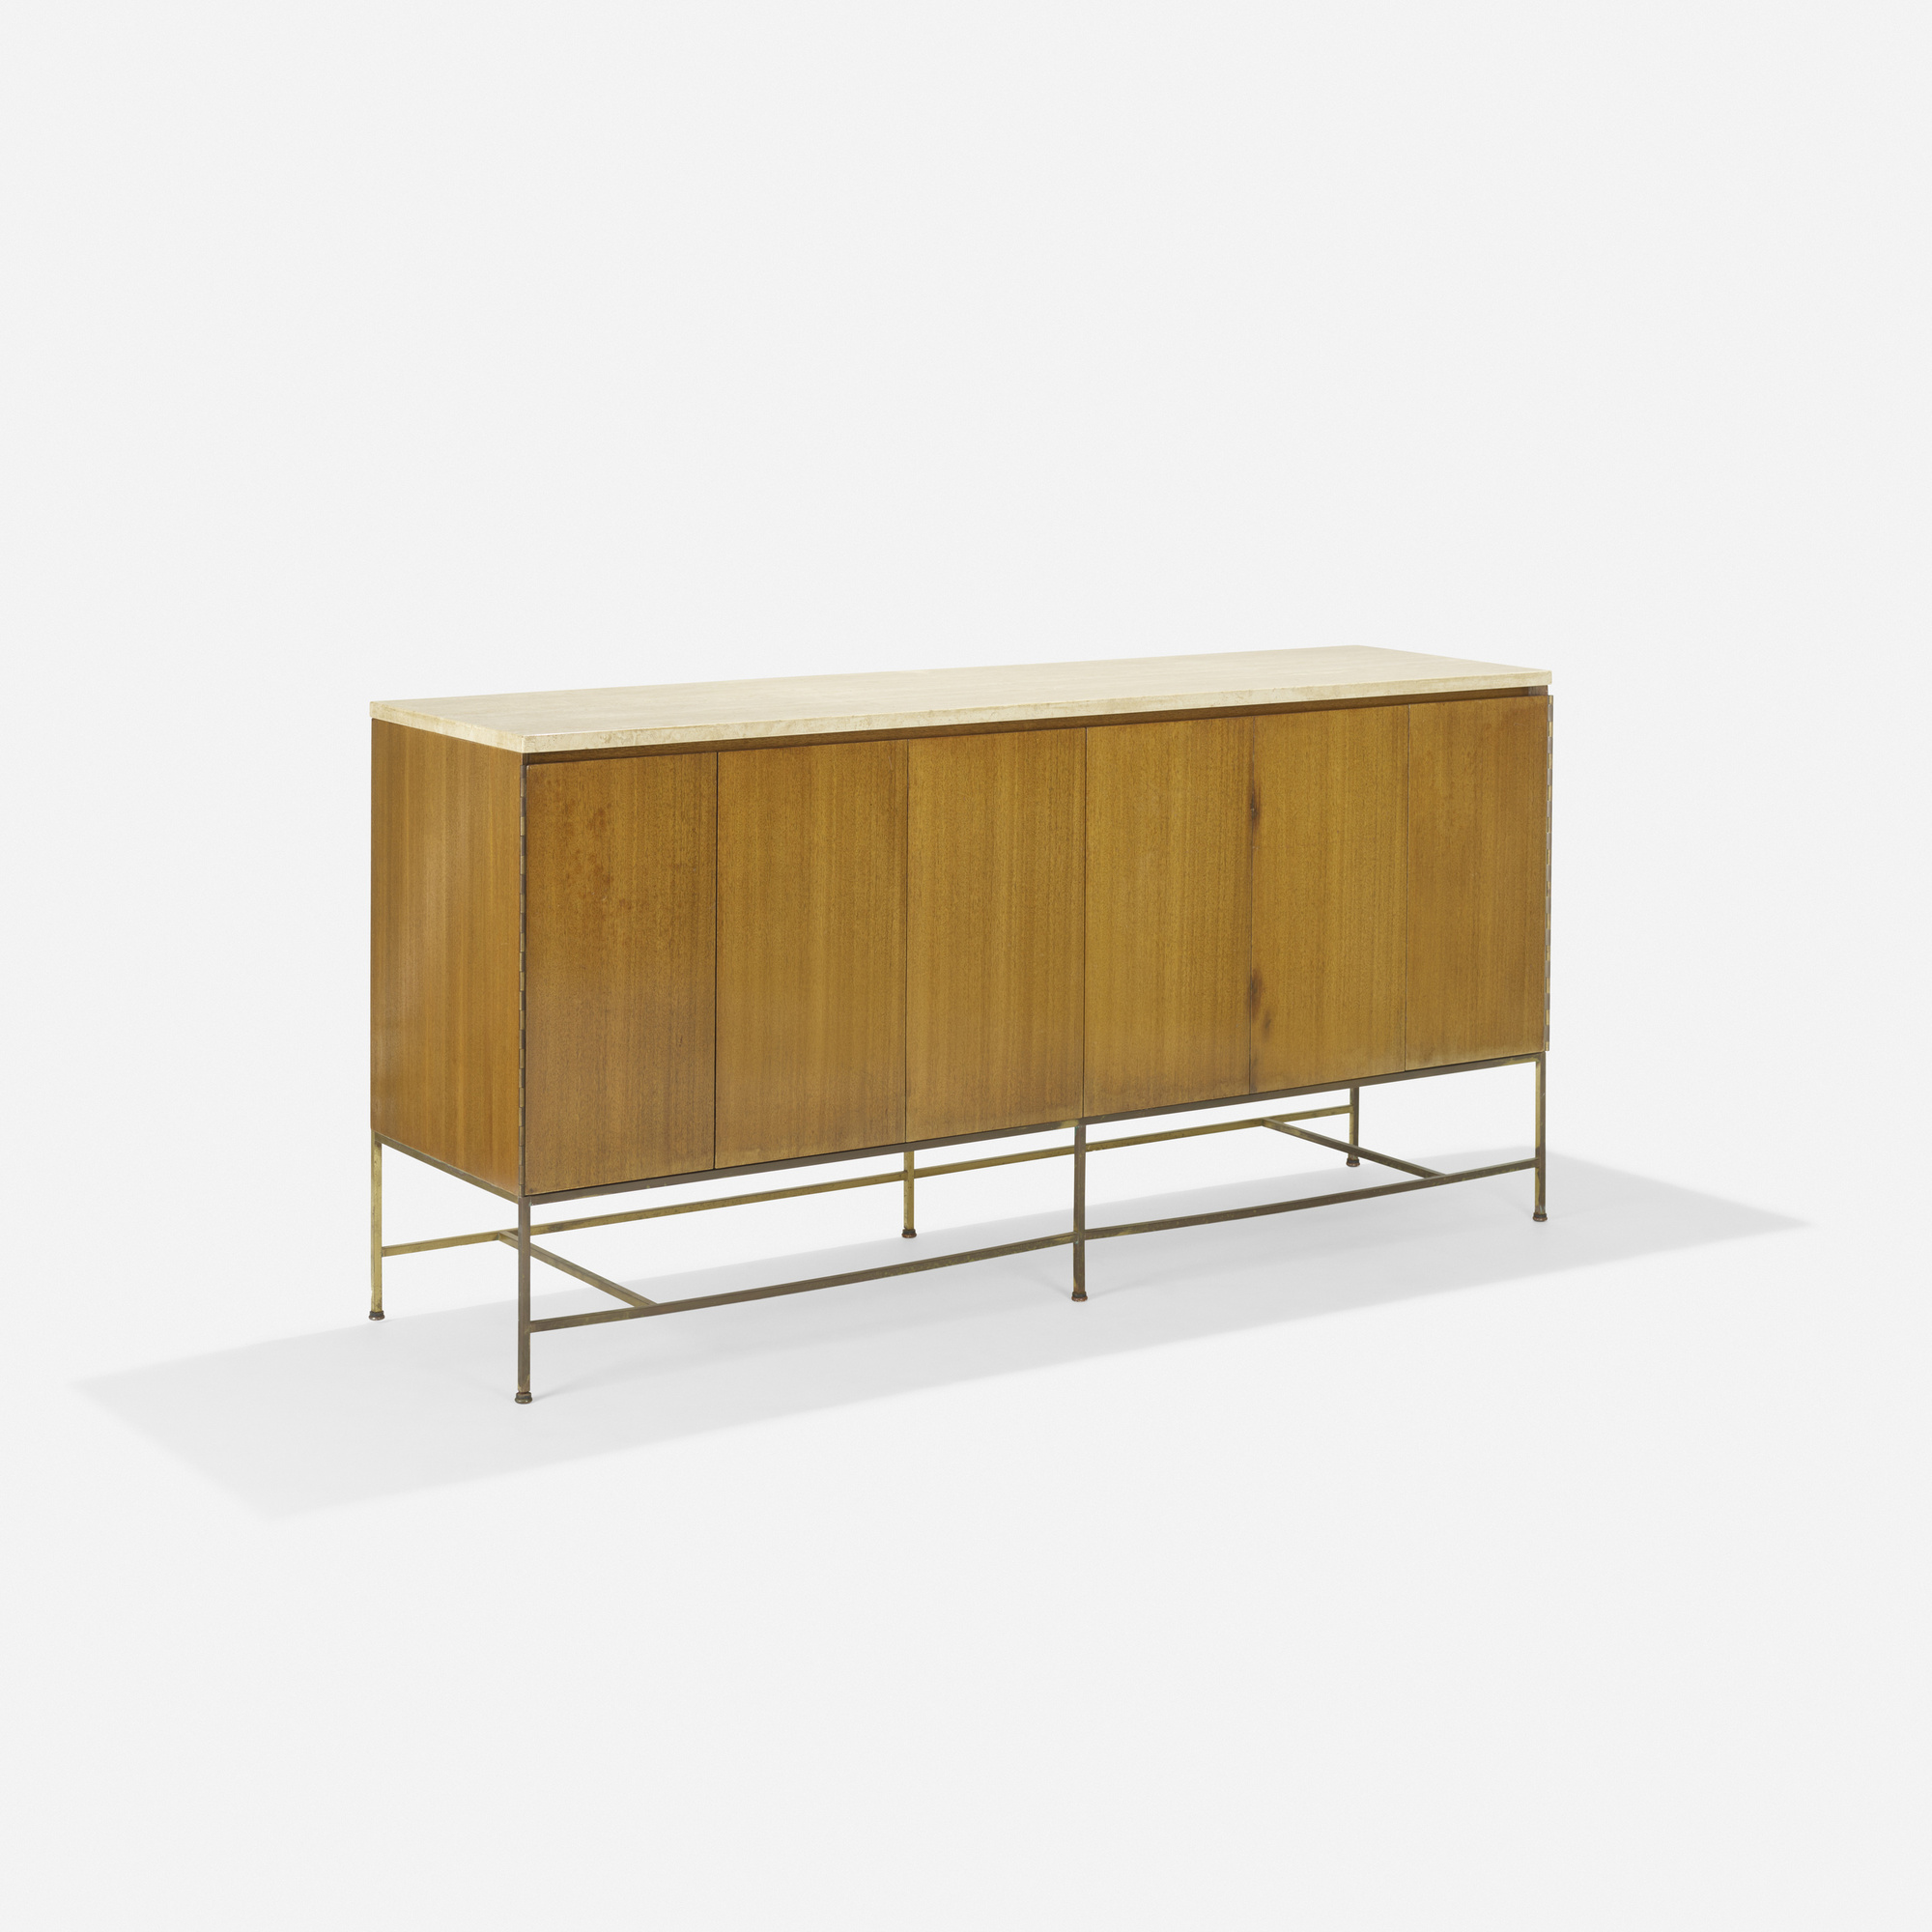 212: Paul McCobb / Irwin Collection Cabinet, Model C7306 (1 Of 3)